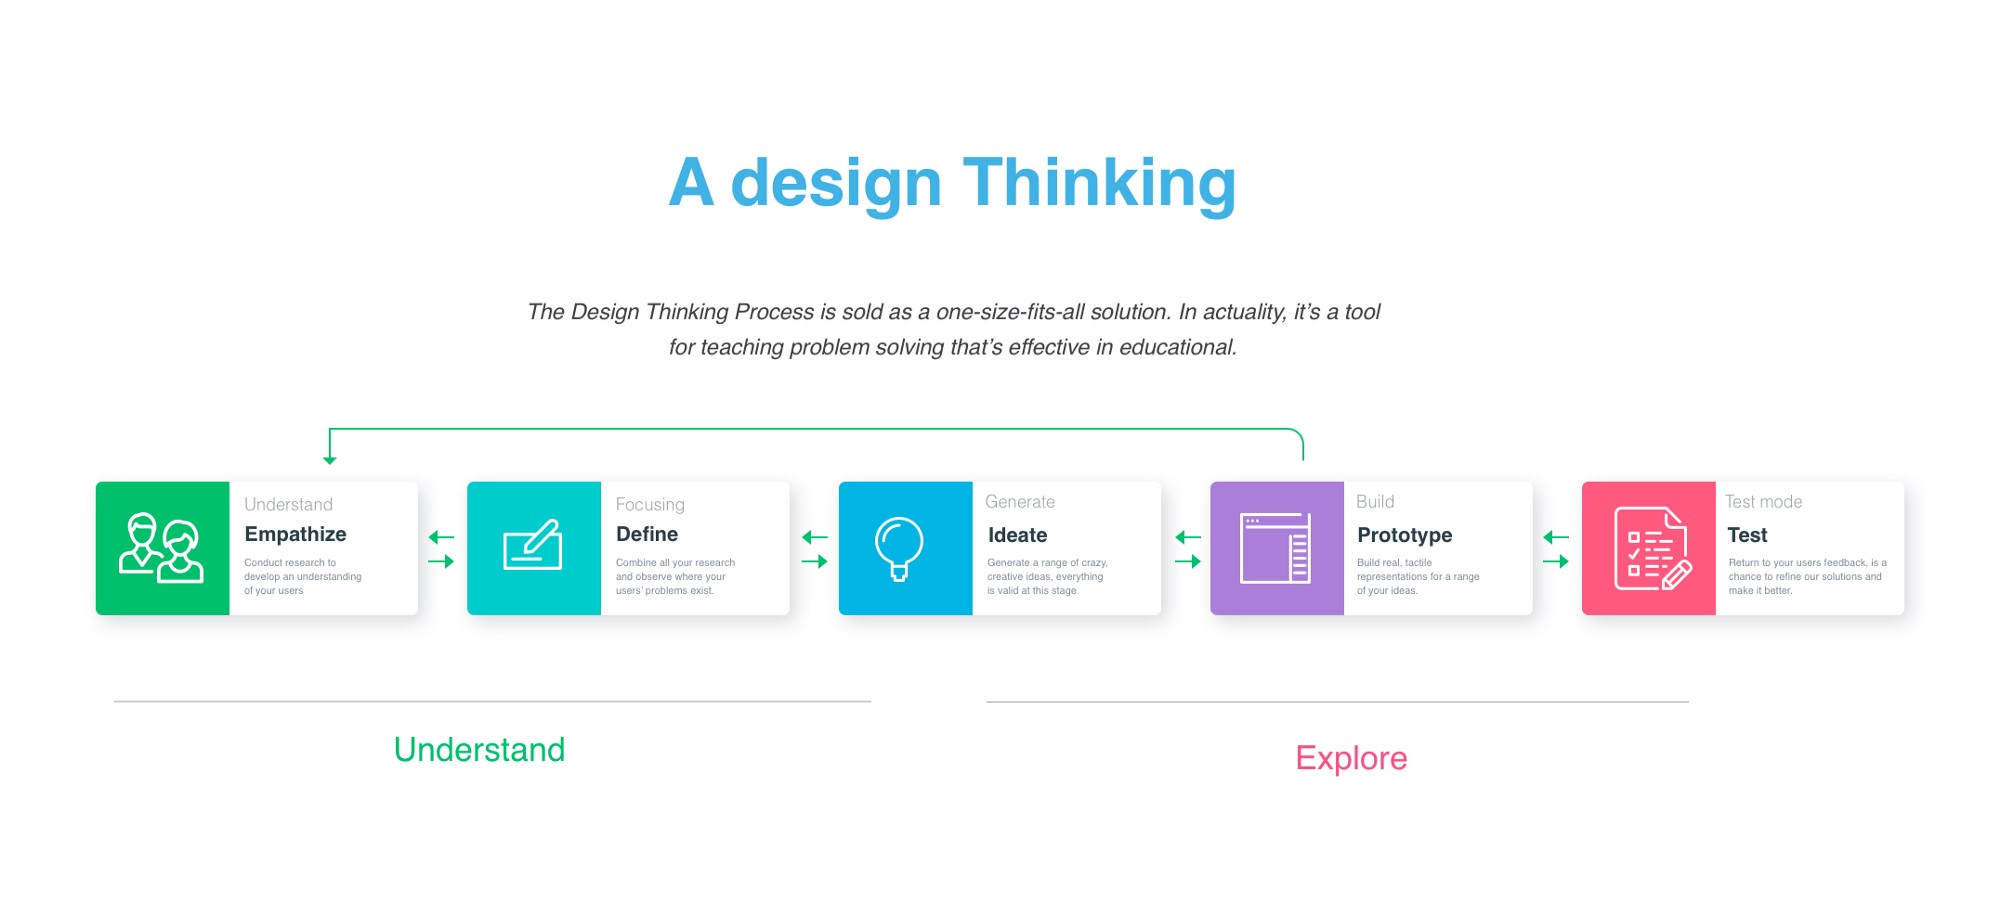 It Is A Fantastic Teaching Tool And Helps Simplify Design Down To Its Essence So Beginners Can Learn